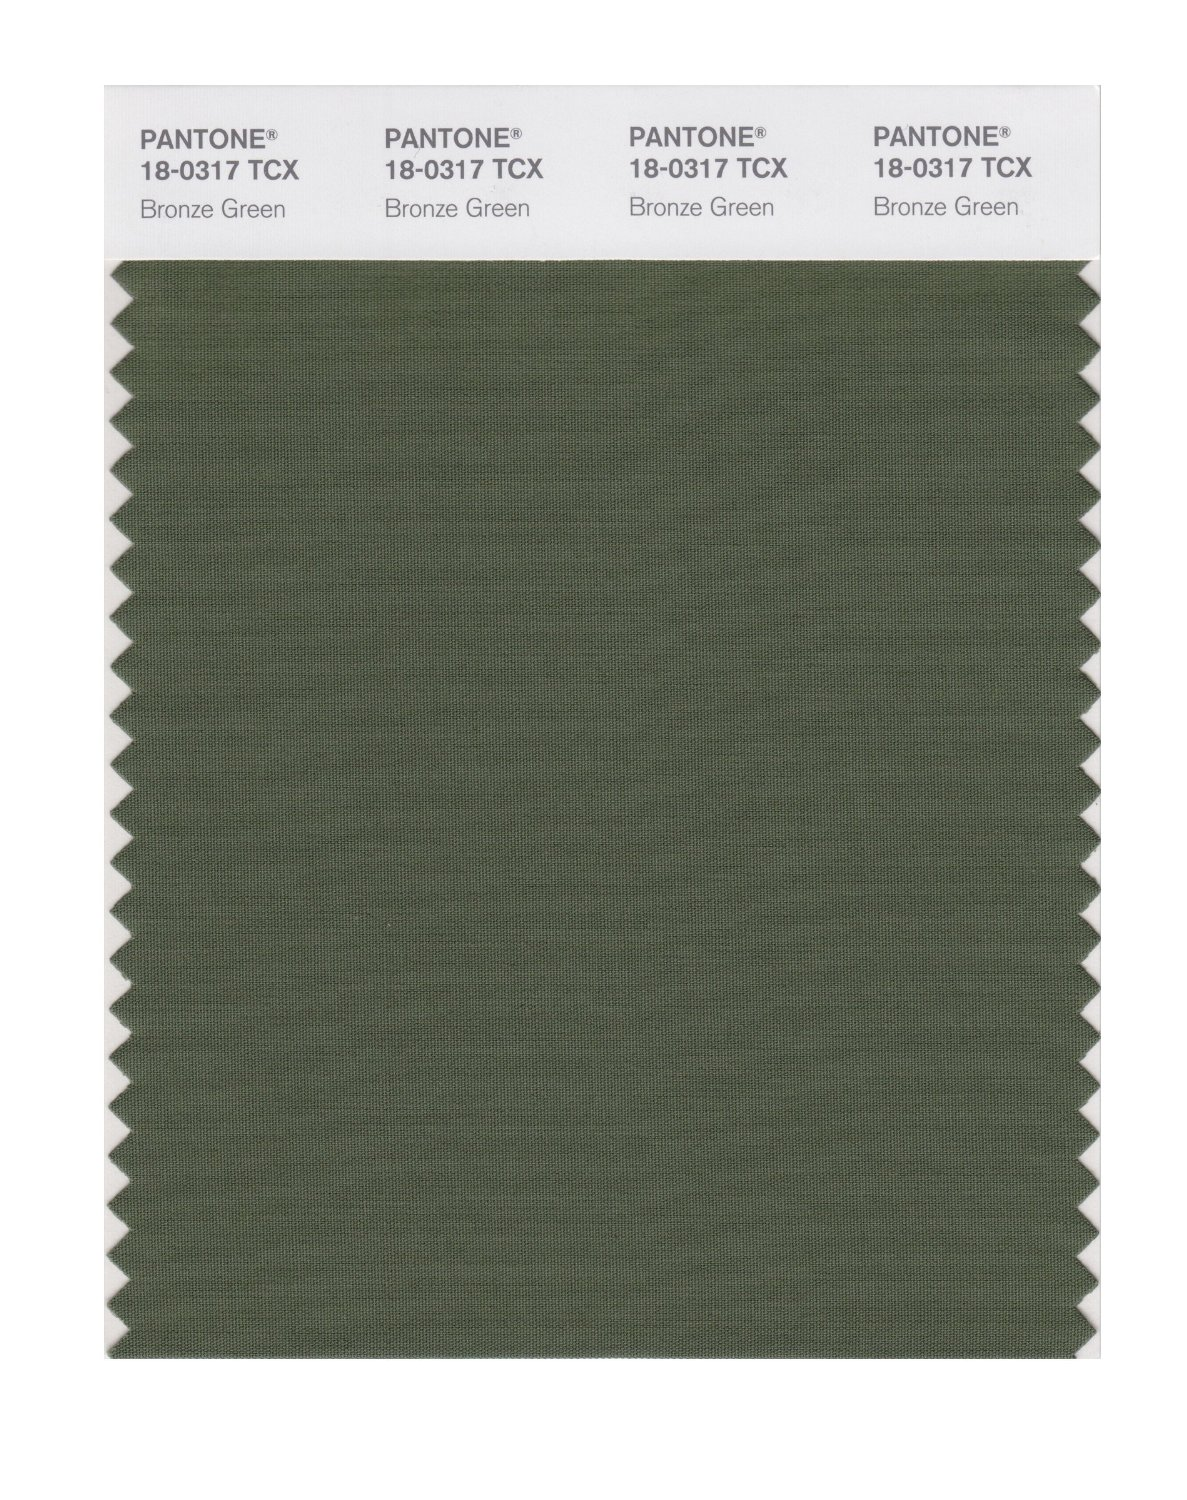 Pantone Smart Swatch 18-0317 Bronze Green